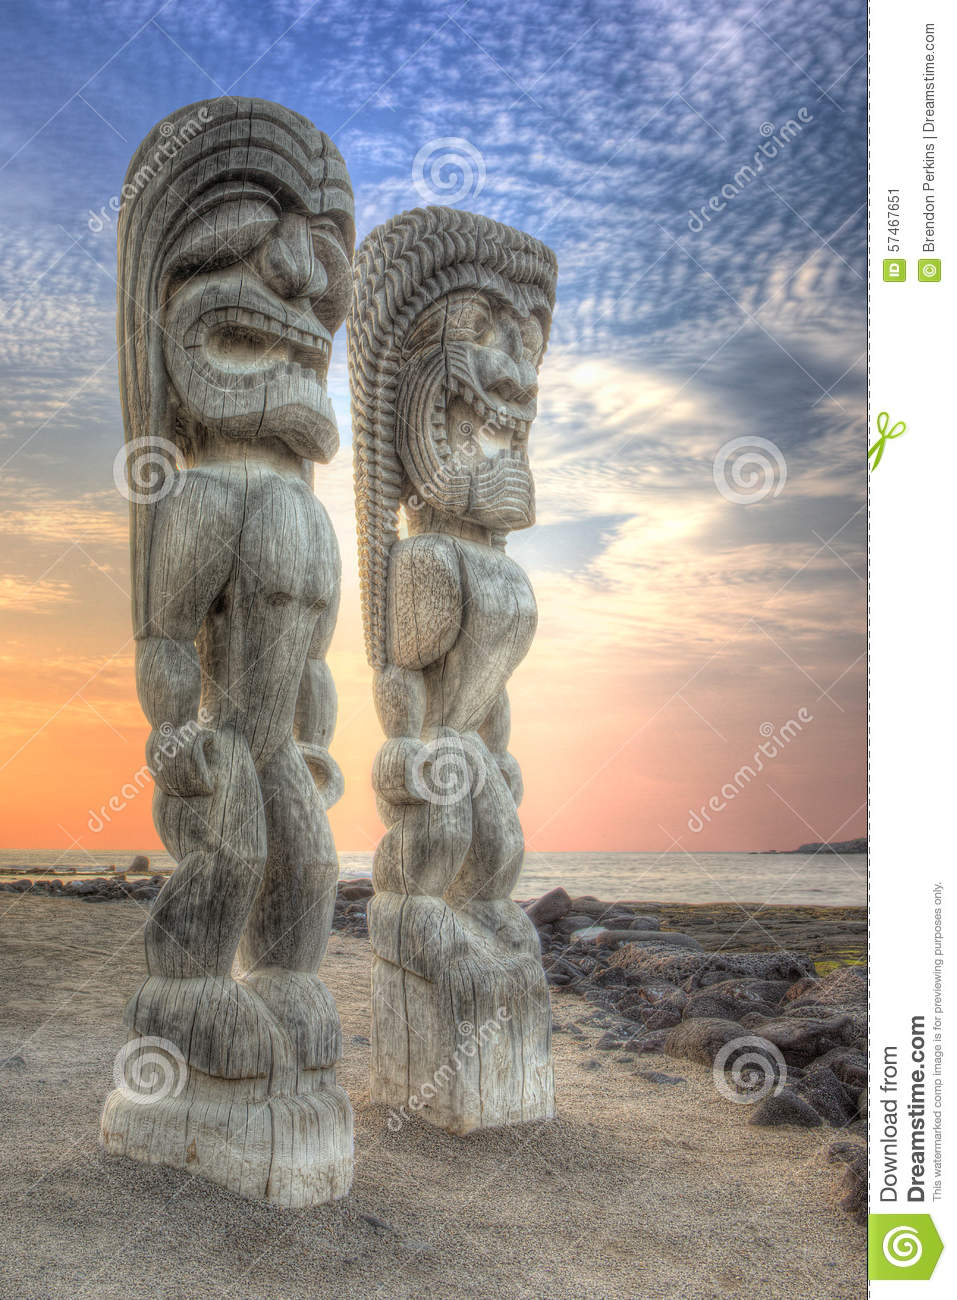 Tiki Statues at the City of Refuge